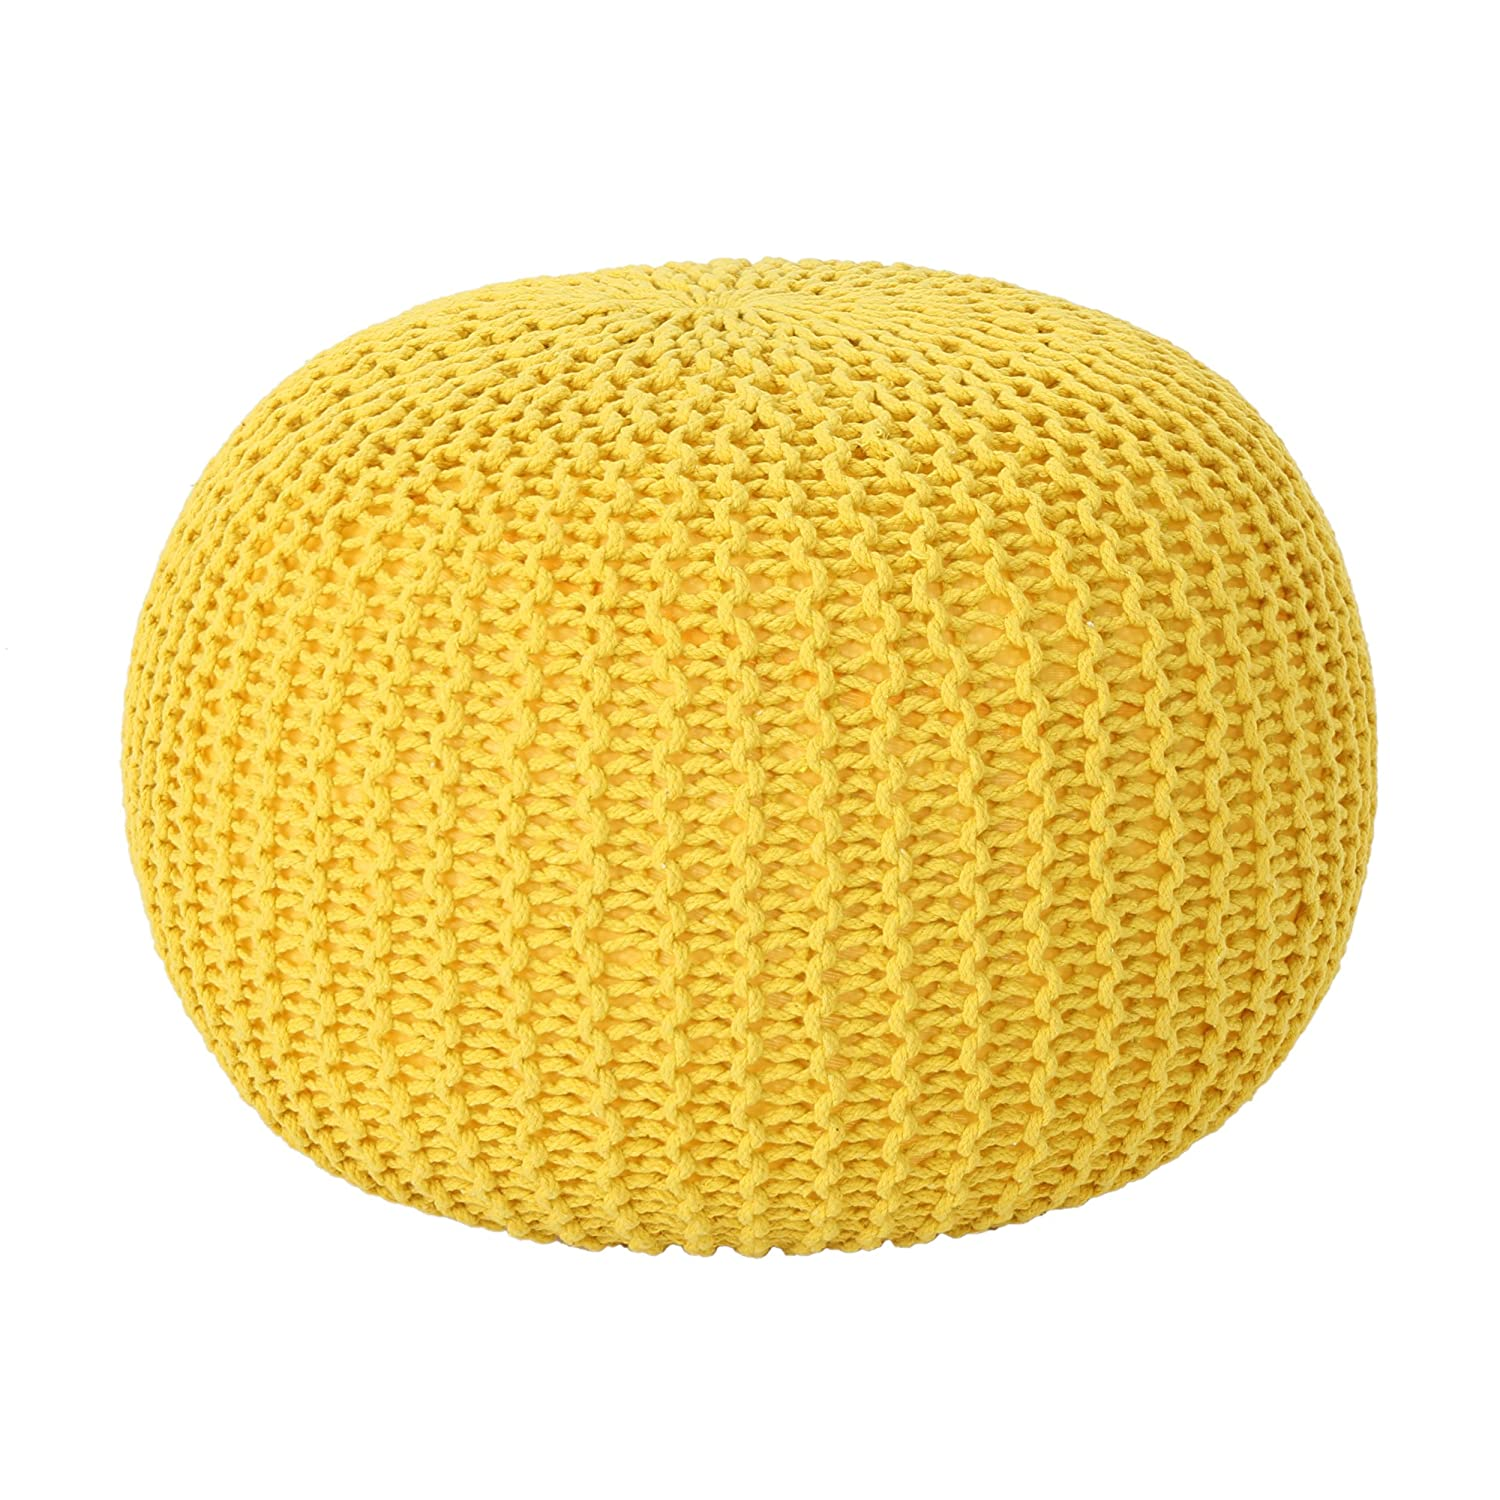 B07BW8FX8D Christopher Knight Home Belle Knitted Cotton Pouf, Yellow 91DRs6lFeNL